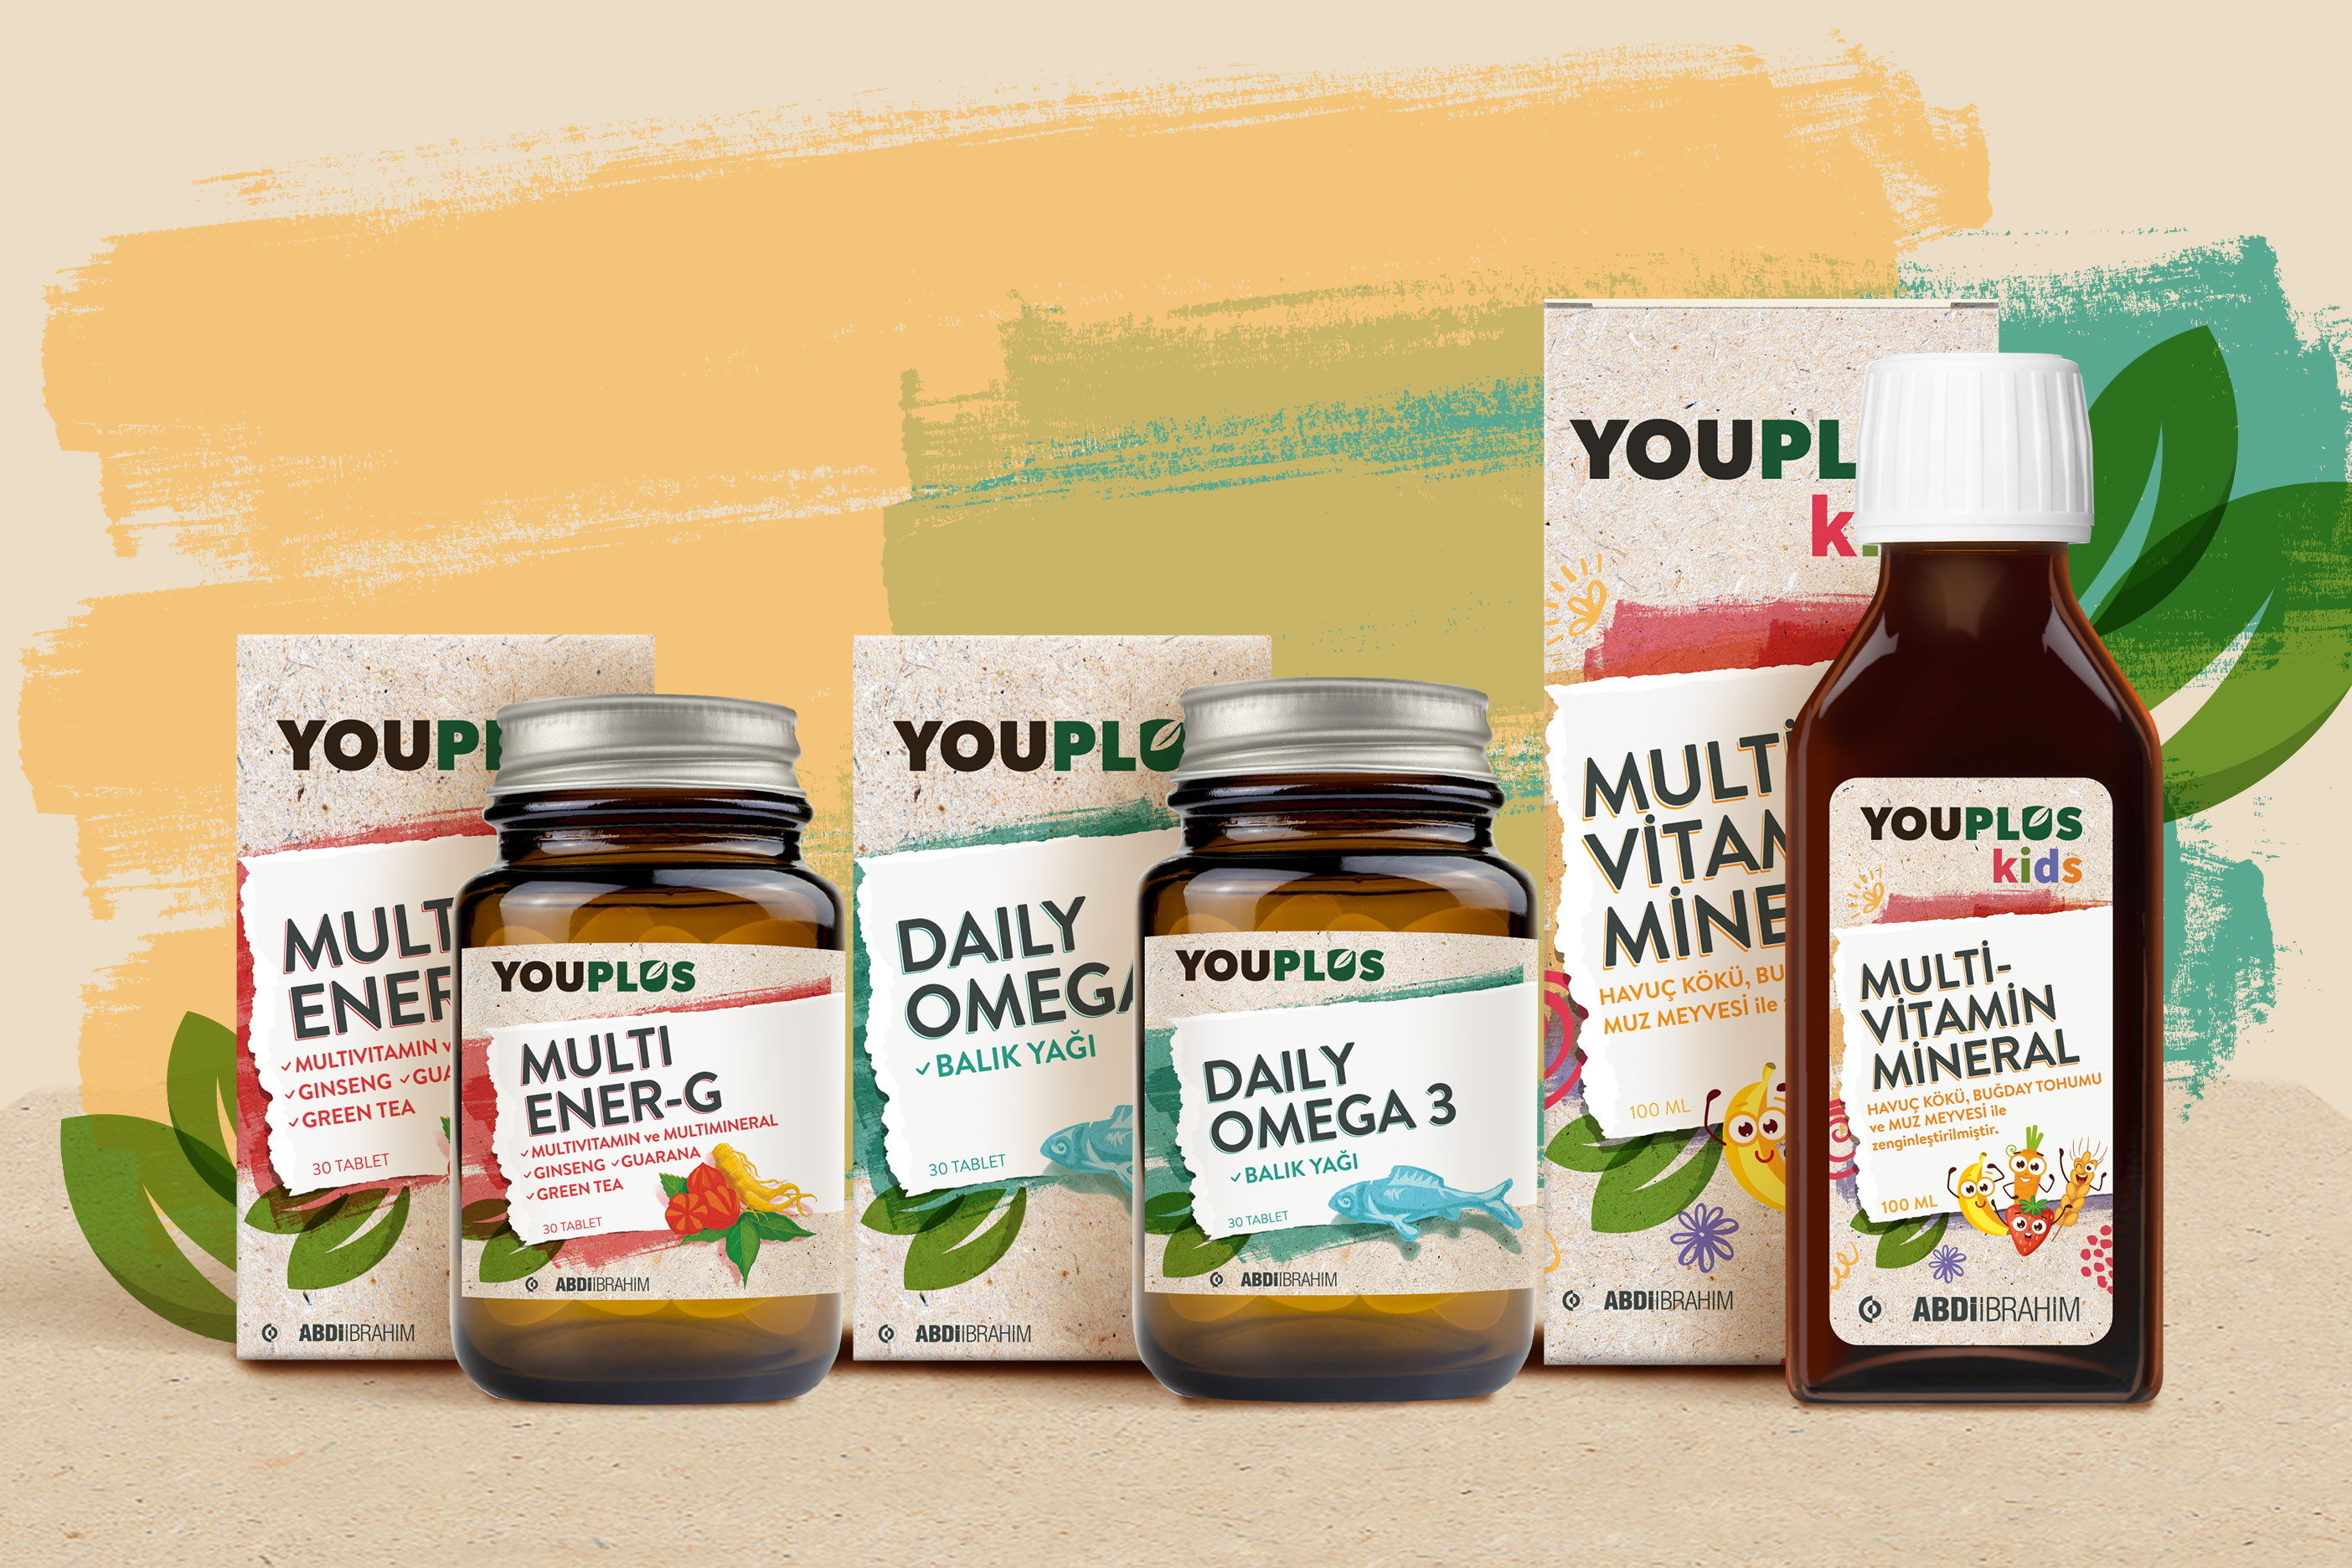 Youplus Packaging and Logo Design from Orhan Irmak Tasarim